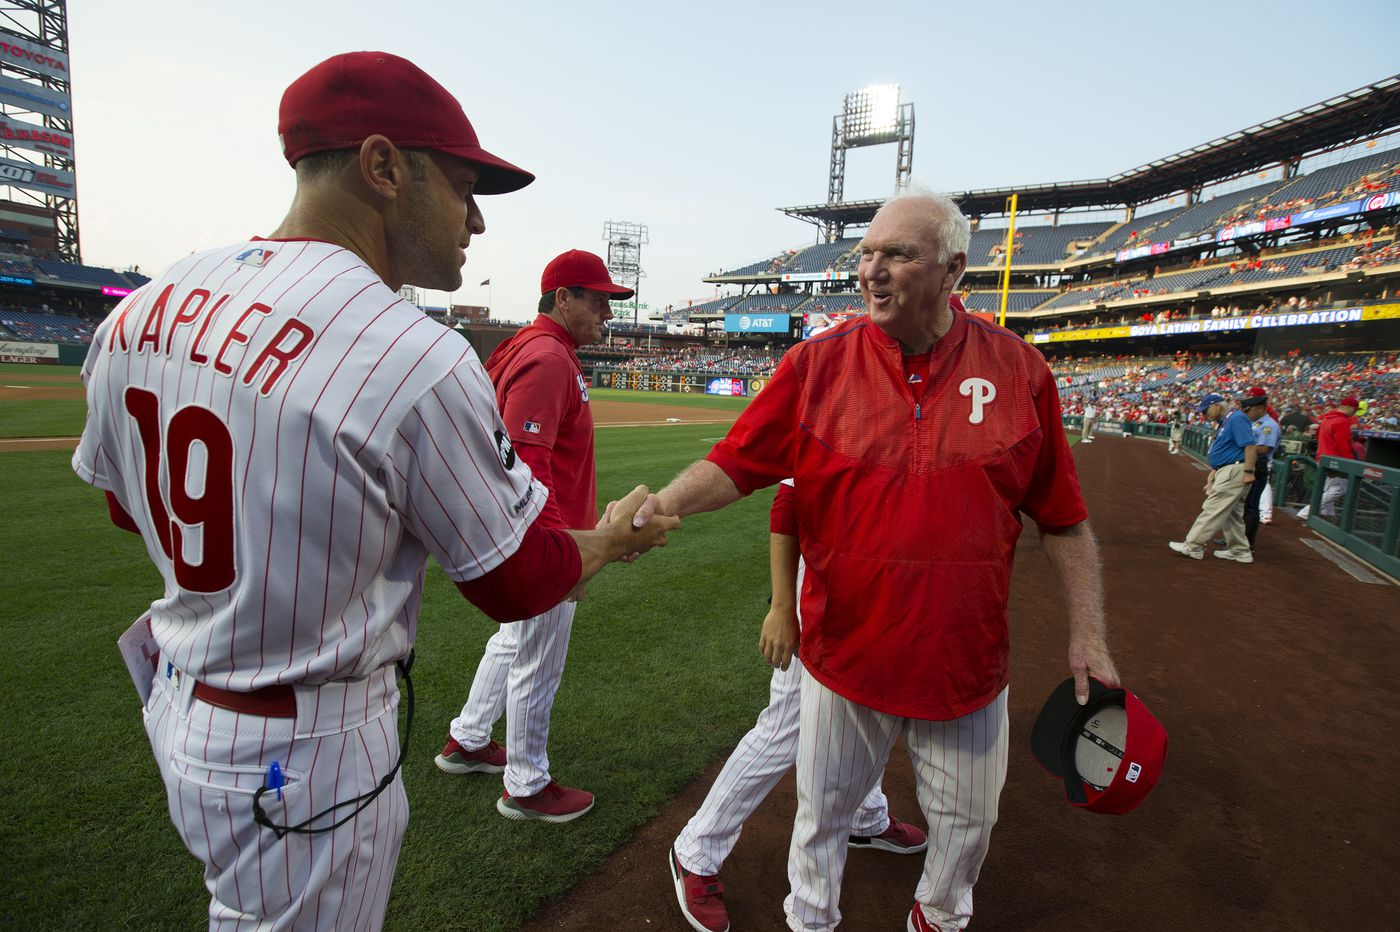 Greg Gross thinks Charlie Manuel's old-school ways could be perfect marriage with analytical approach | Bob Brookover